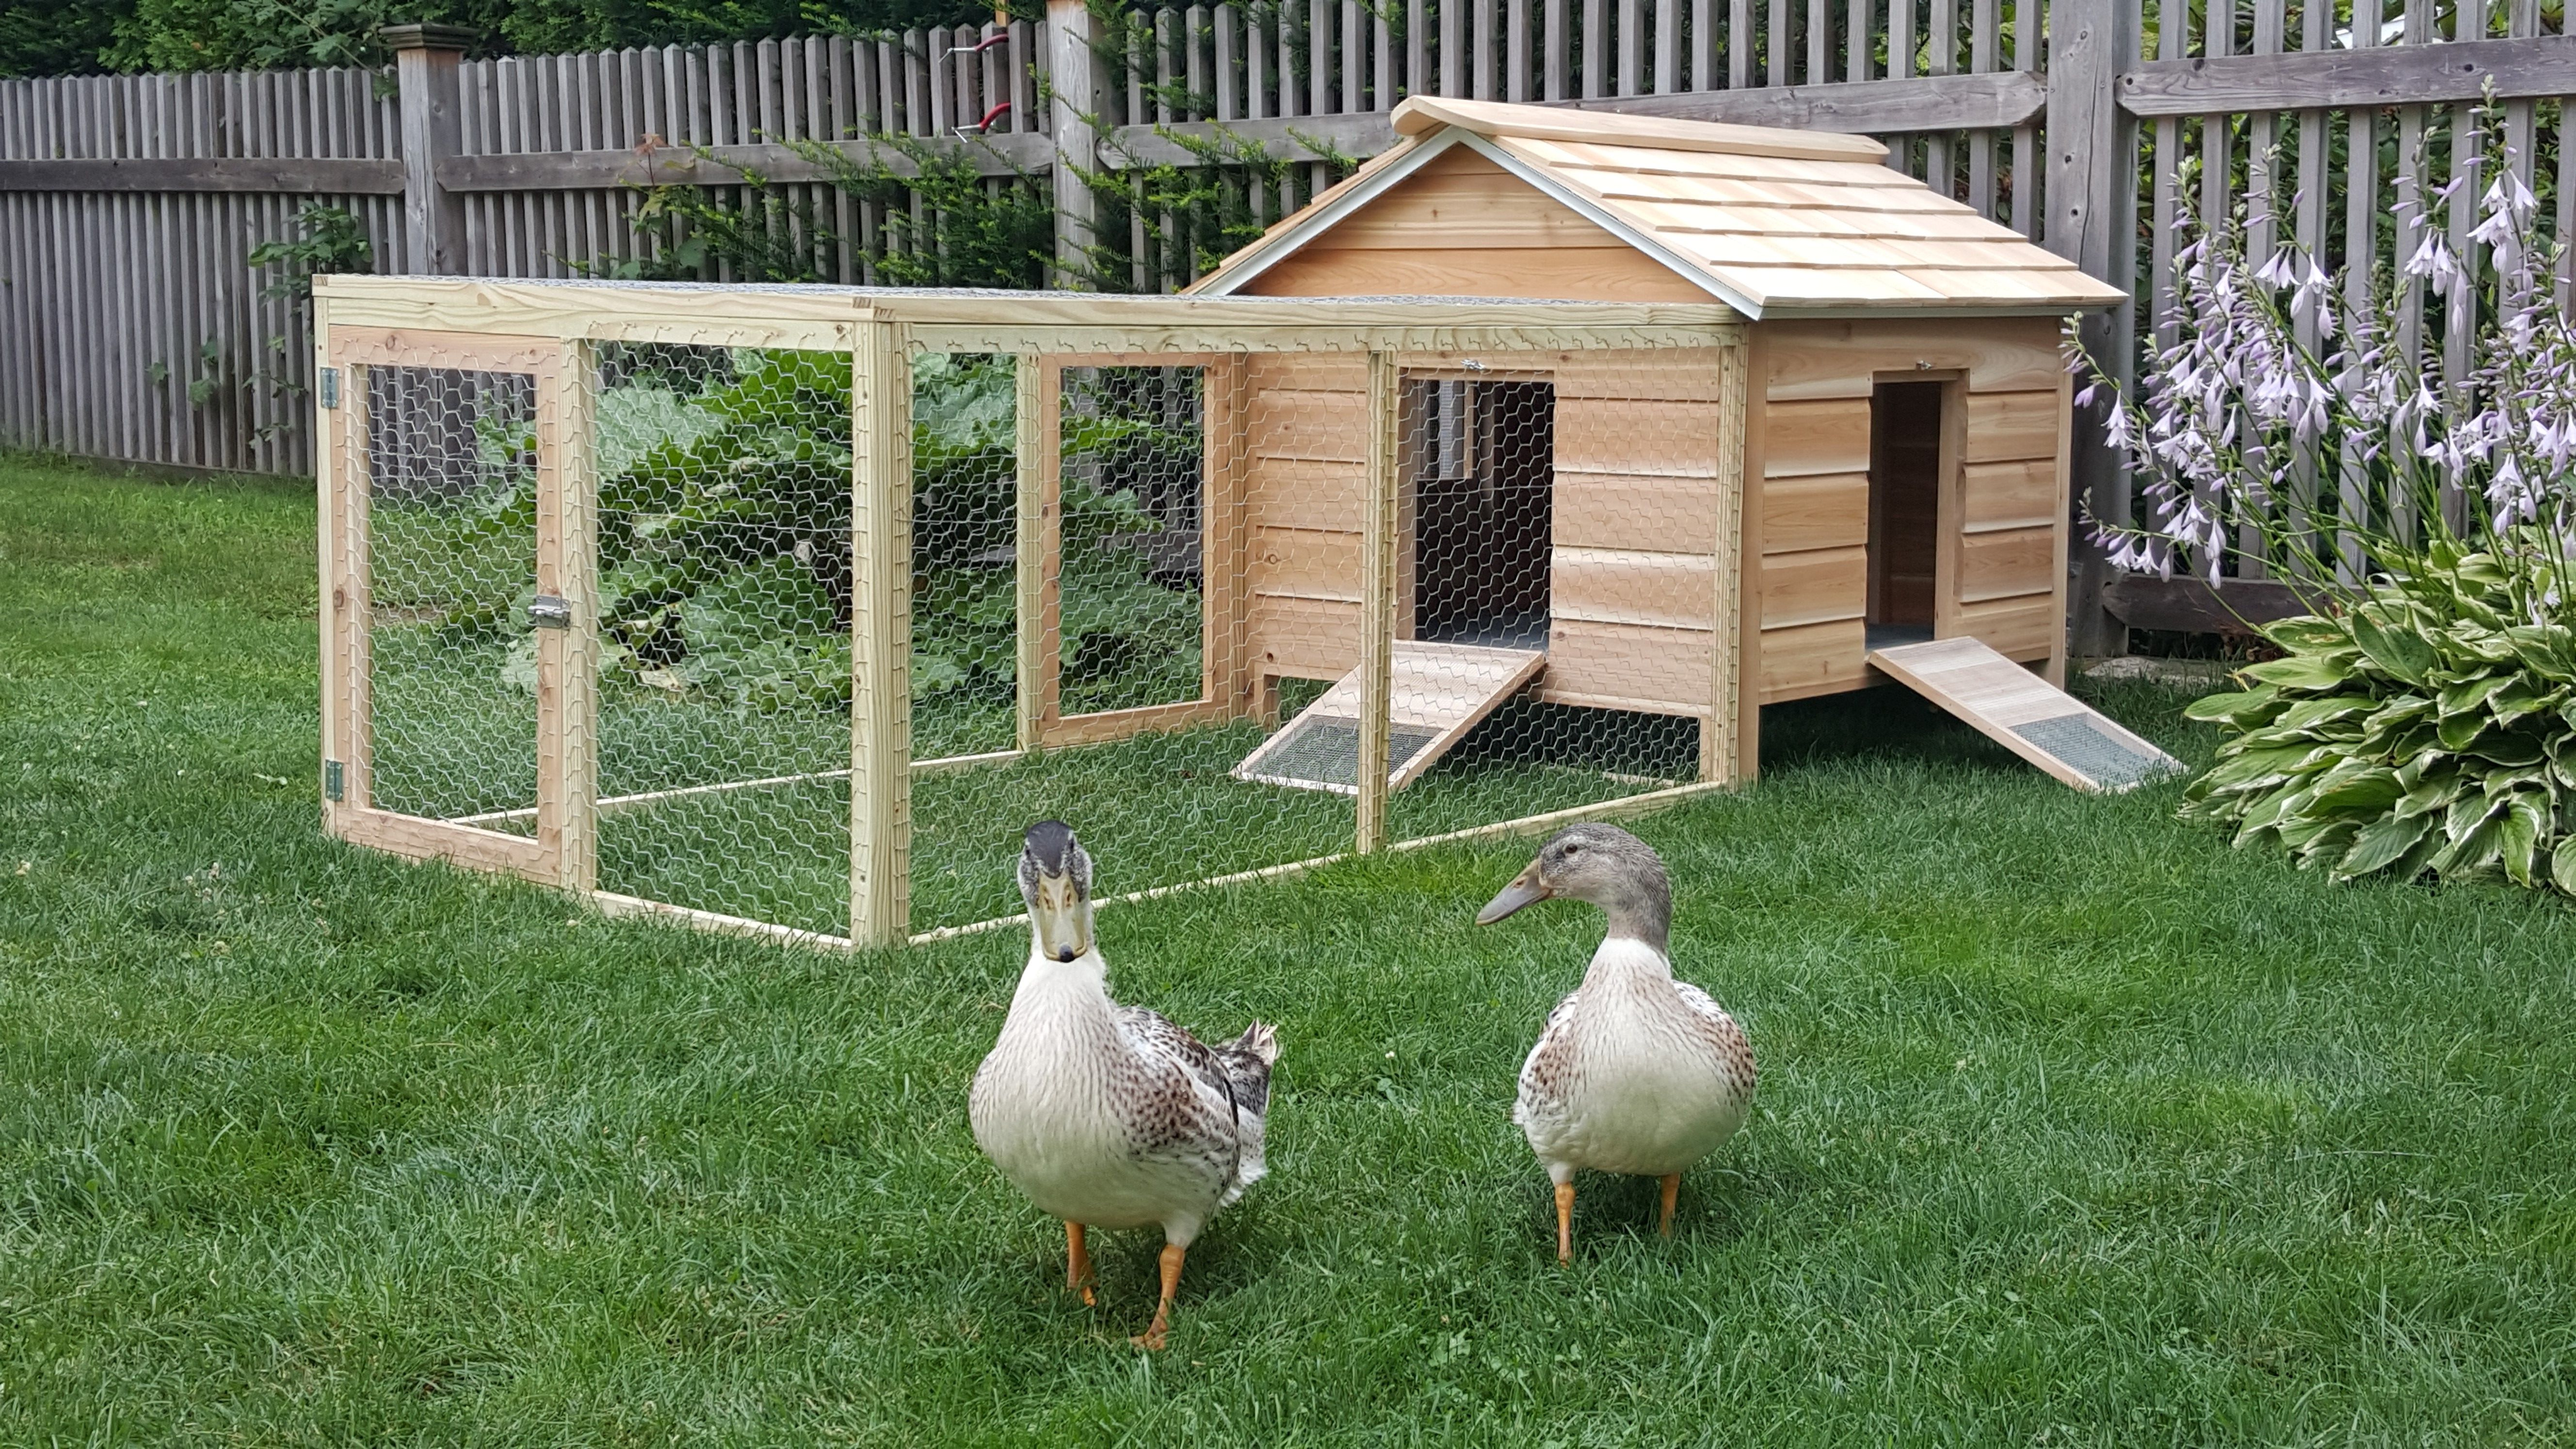 com coops wood natural animal at rabbit coop hutch natura hutches products lowes pl trixie chicken shop pet care